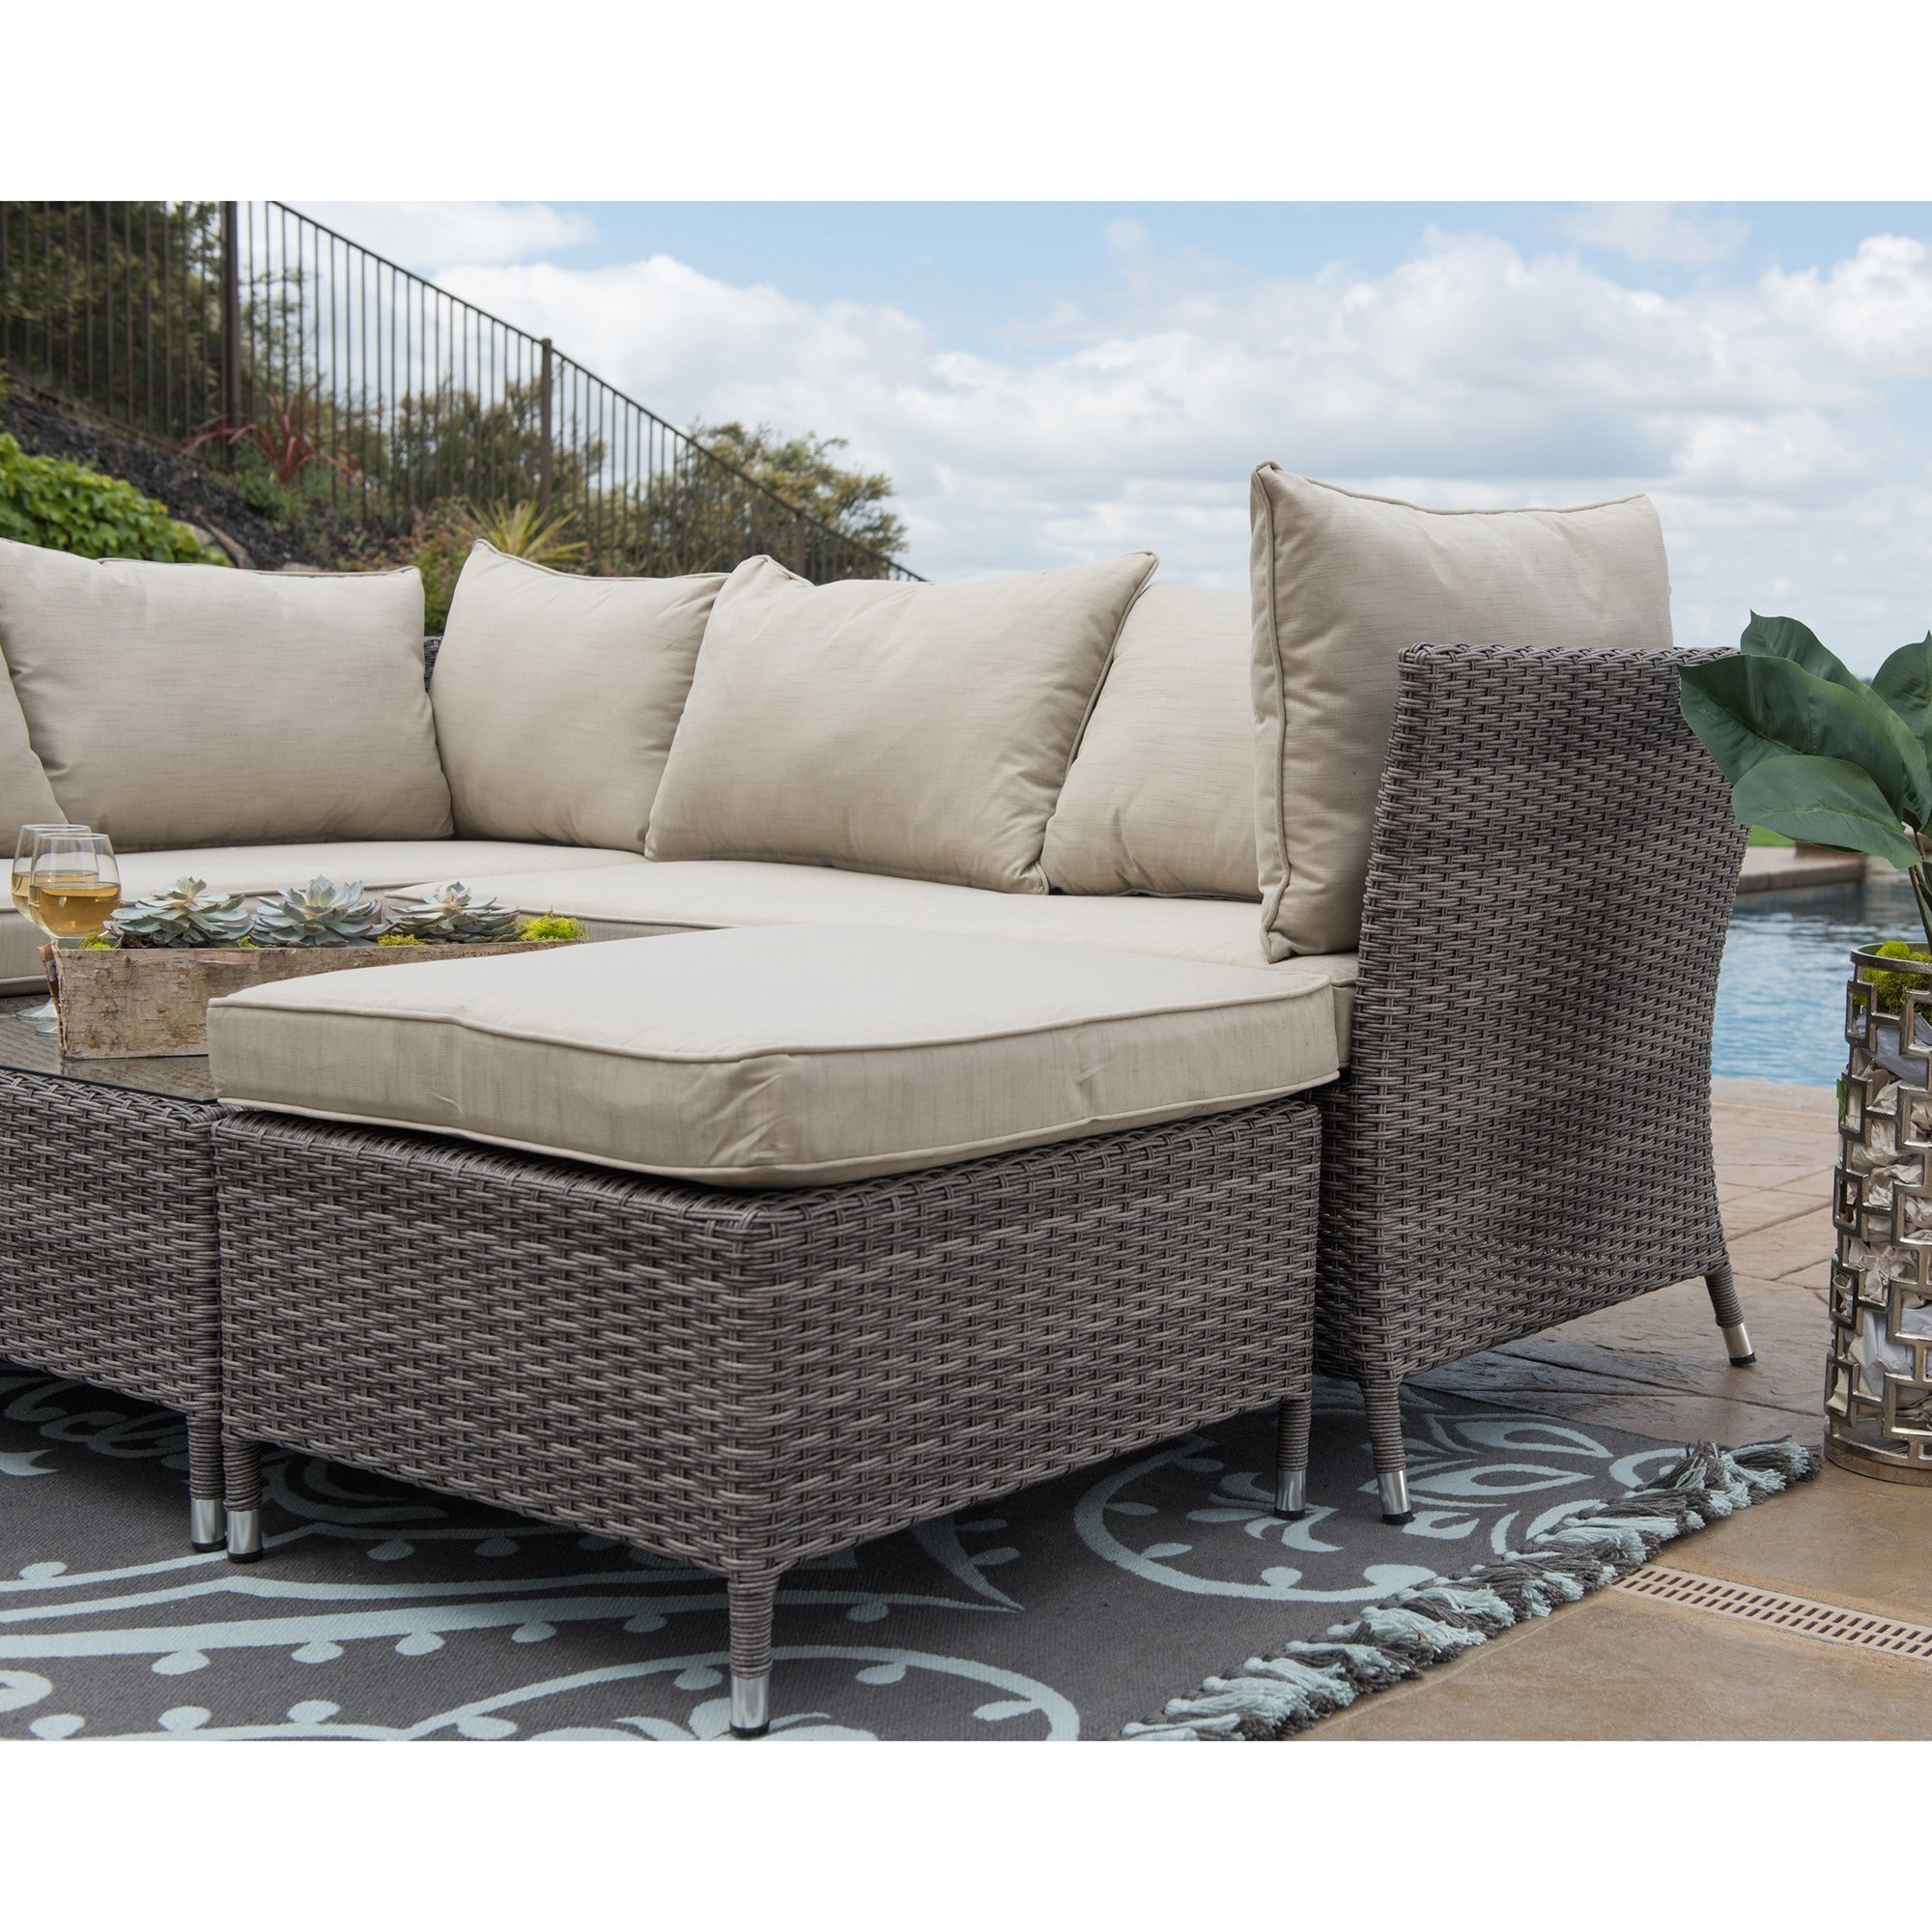 chairs deep set all seating squa squ patio tbl club weather swivel with w wicker coffee and mila furniture collection